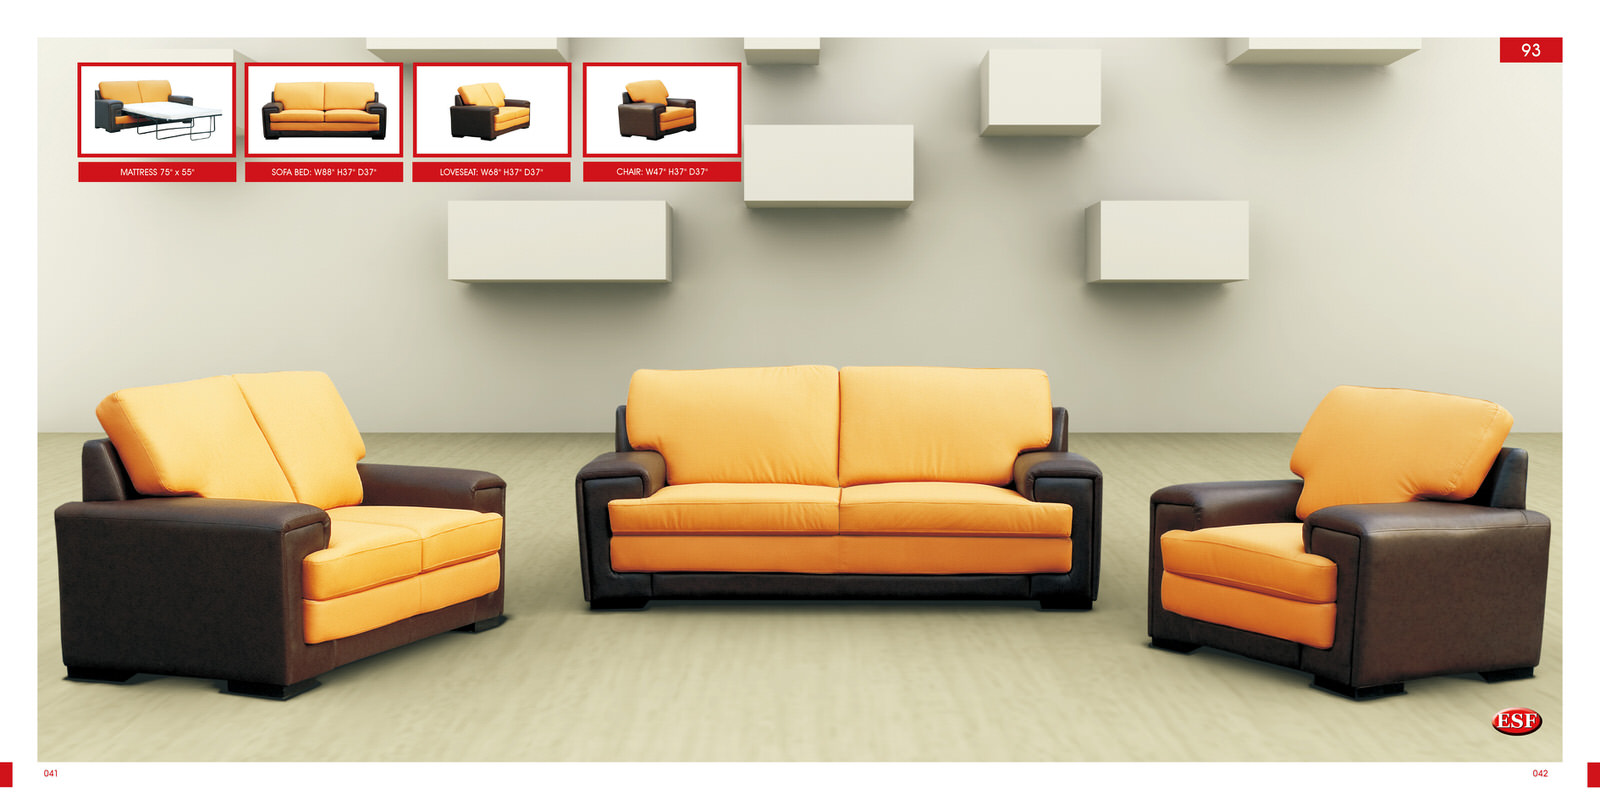 Faux Leather Sofa Beds - Futonland Functional Furniture and